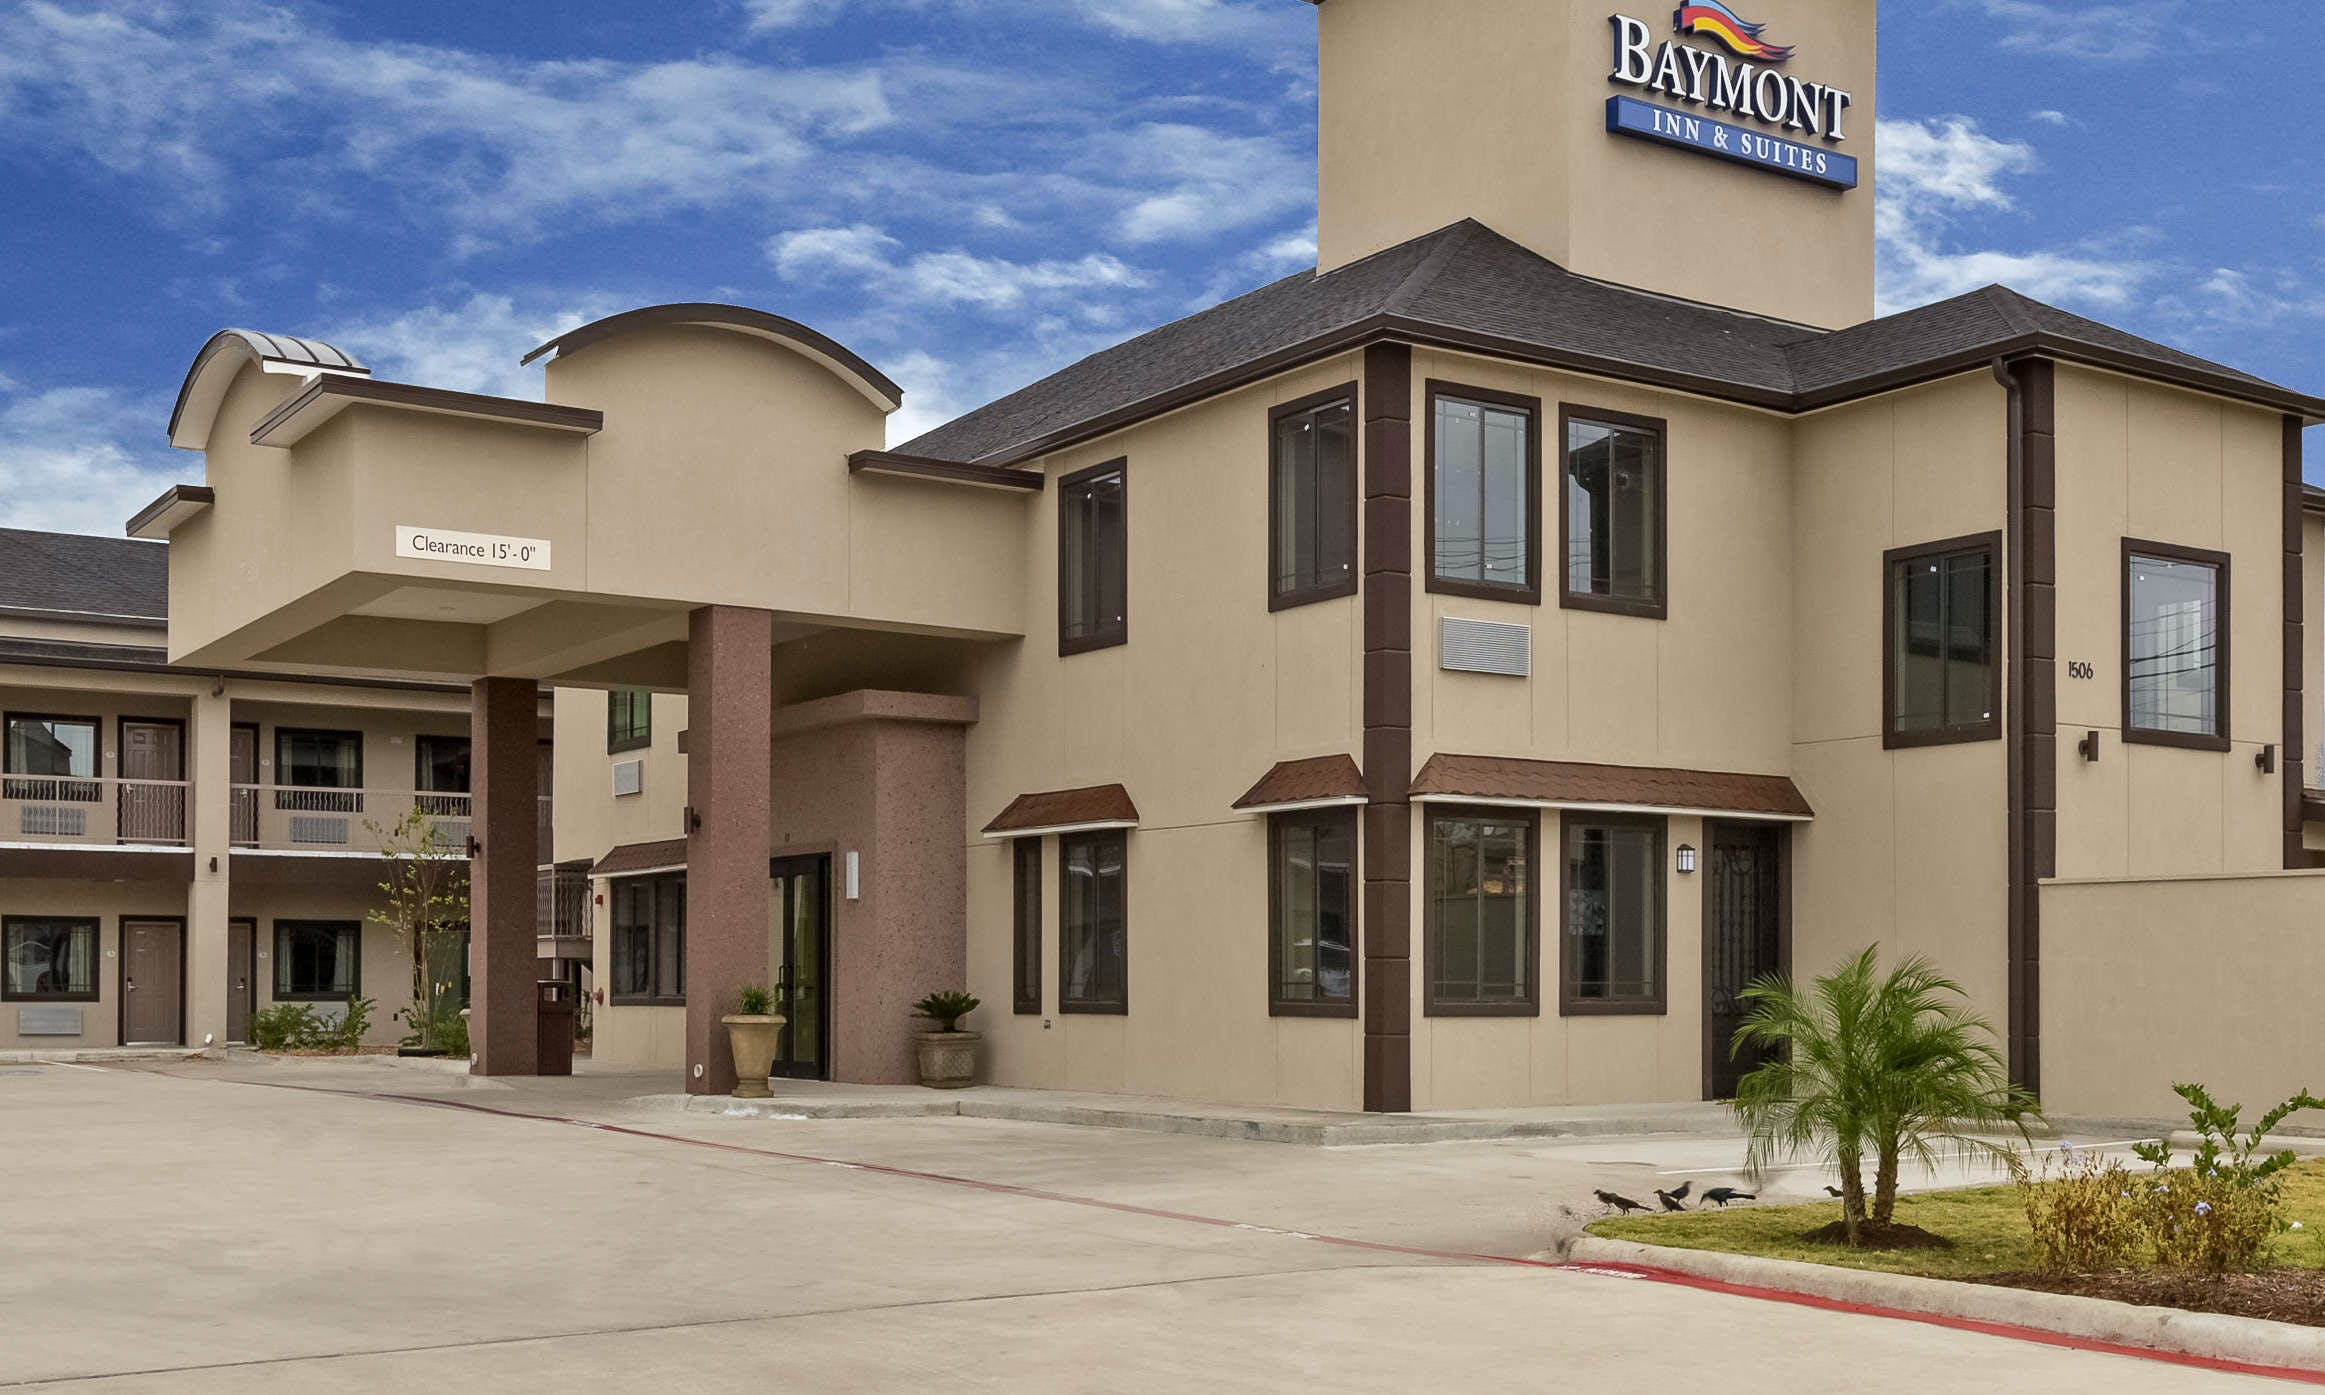 Last Minute Hotel Deals in College Station - HotelTonight